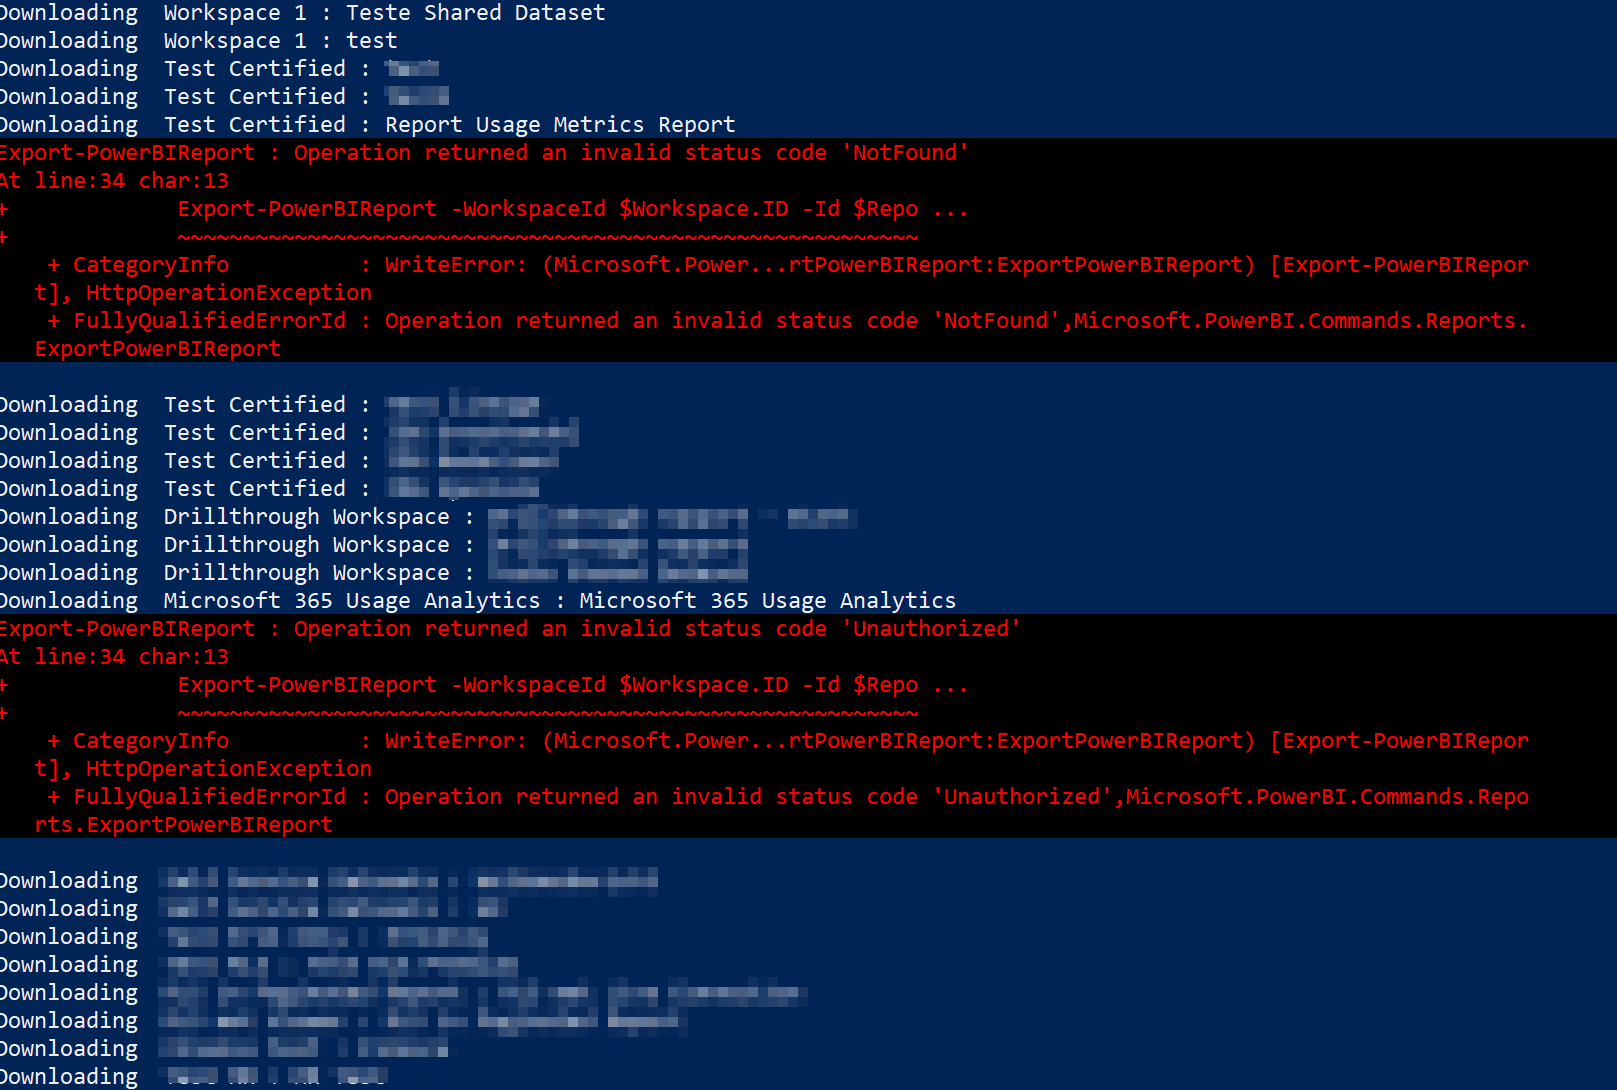 Downloading notification in PowerShell